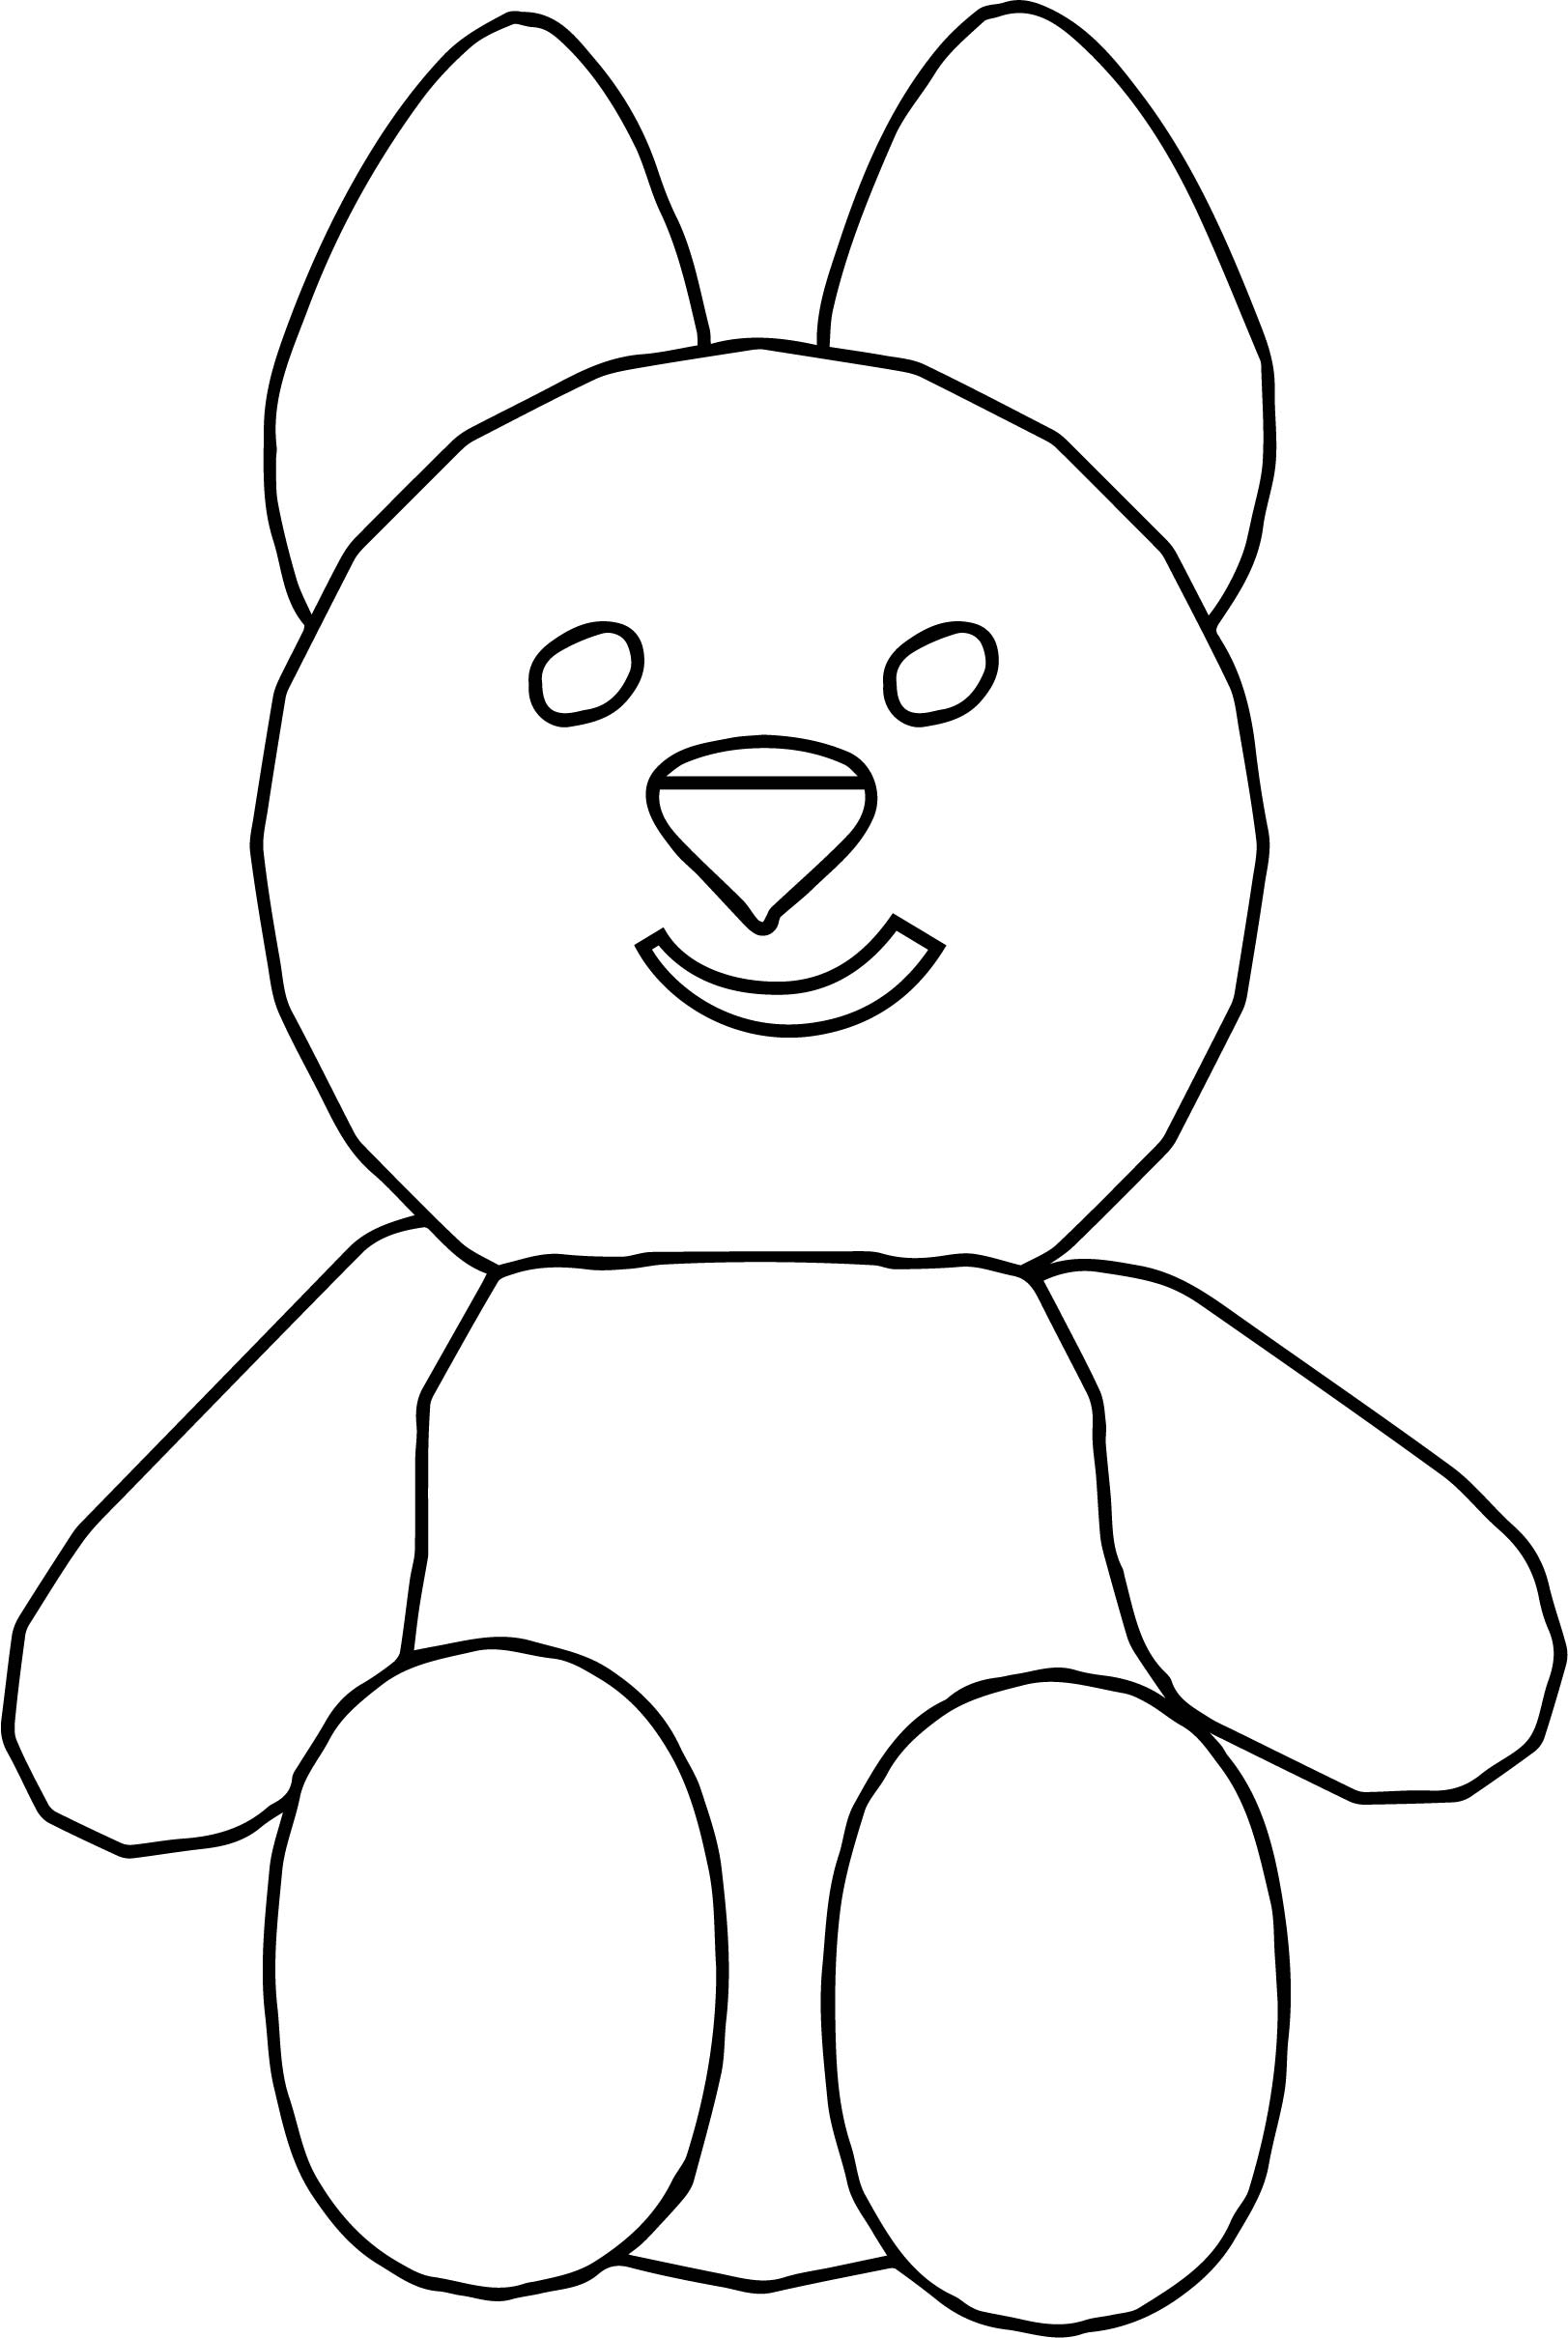 Bear Cartoon Front View Smile Coloring Page